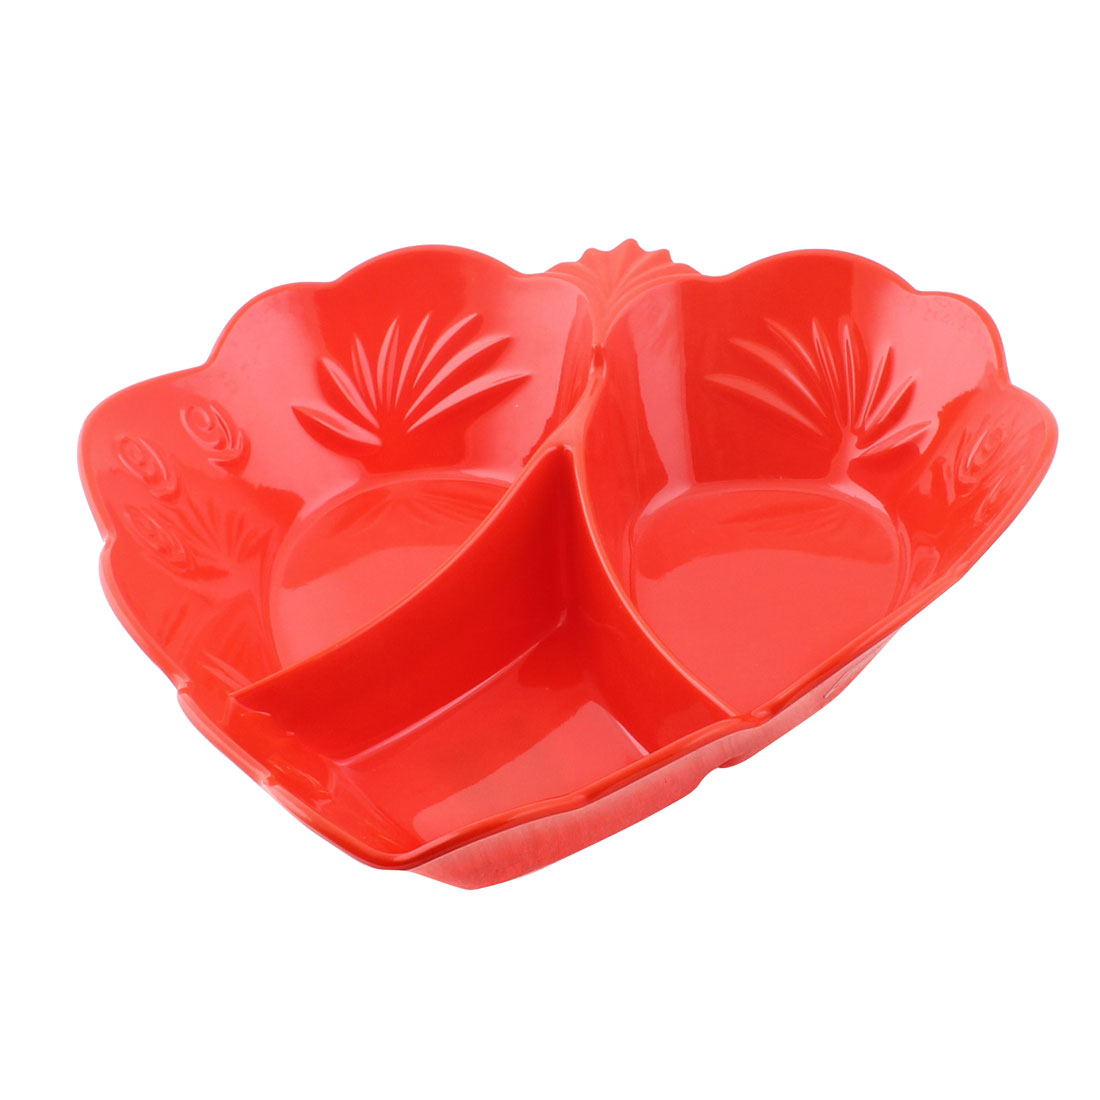 Plastic 3 Compartments Fruit Candy Snack Nuts Storage Tray Plate Holder Red